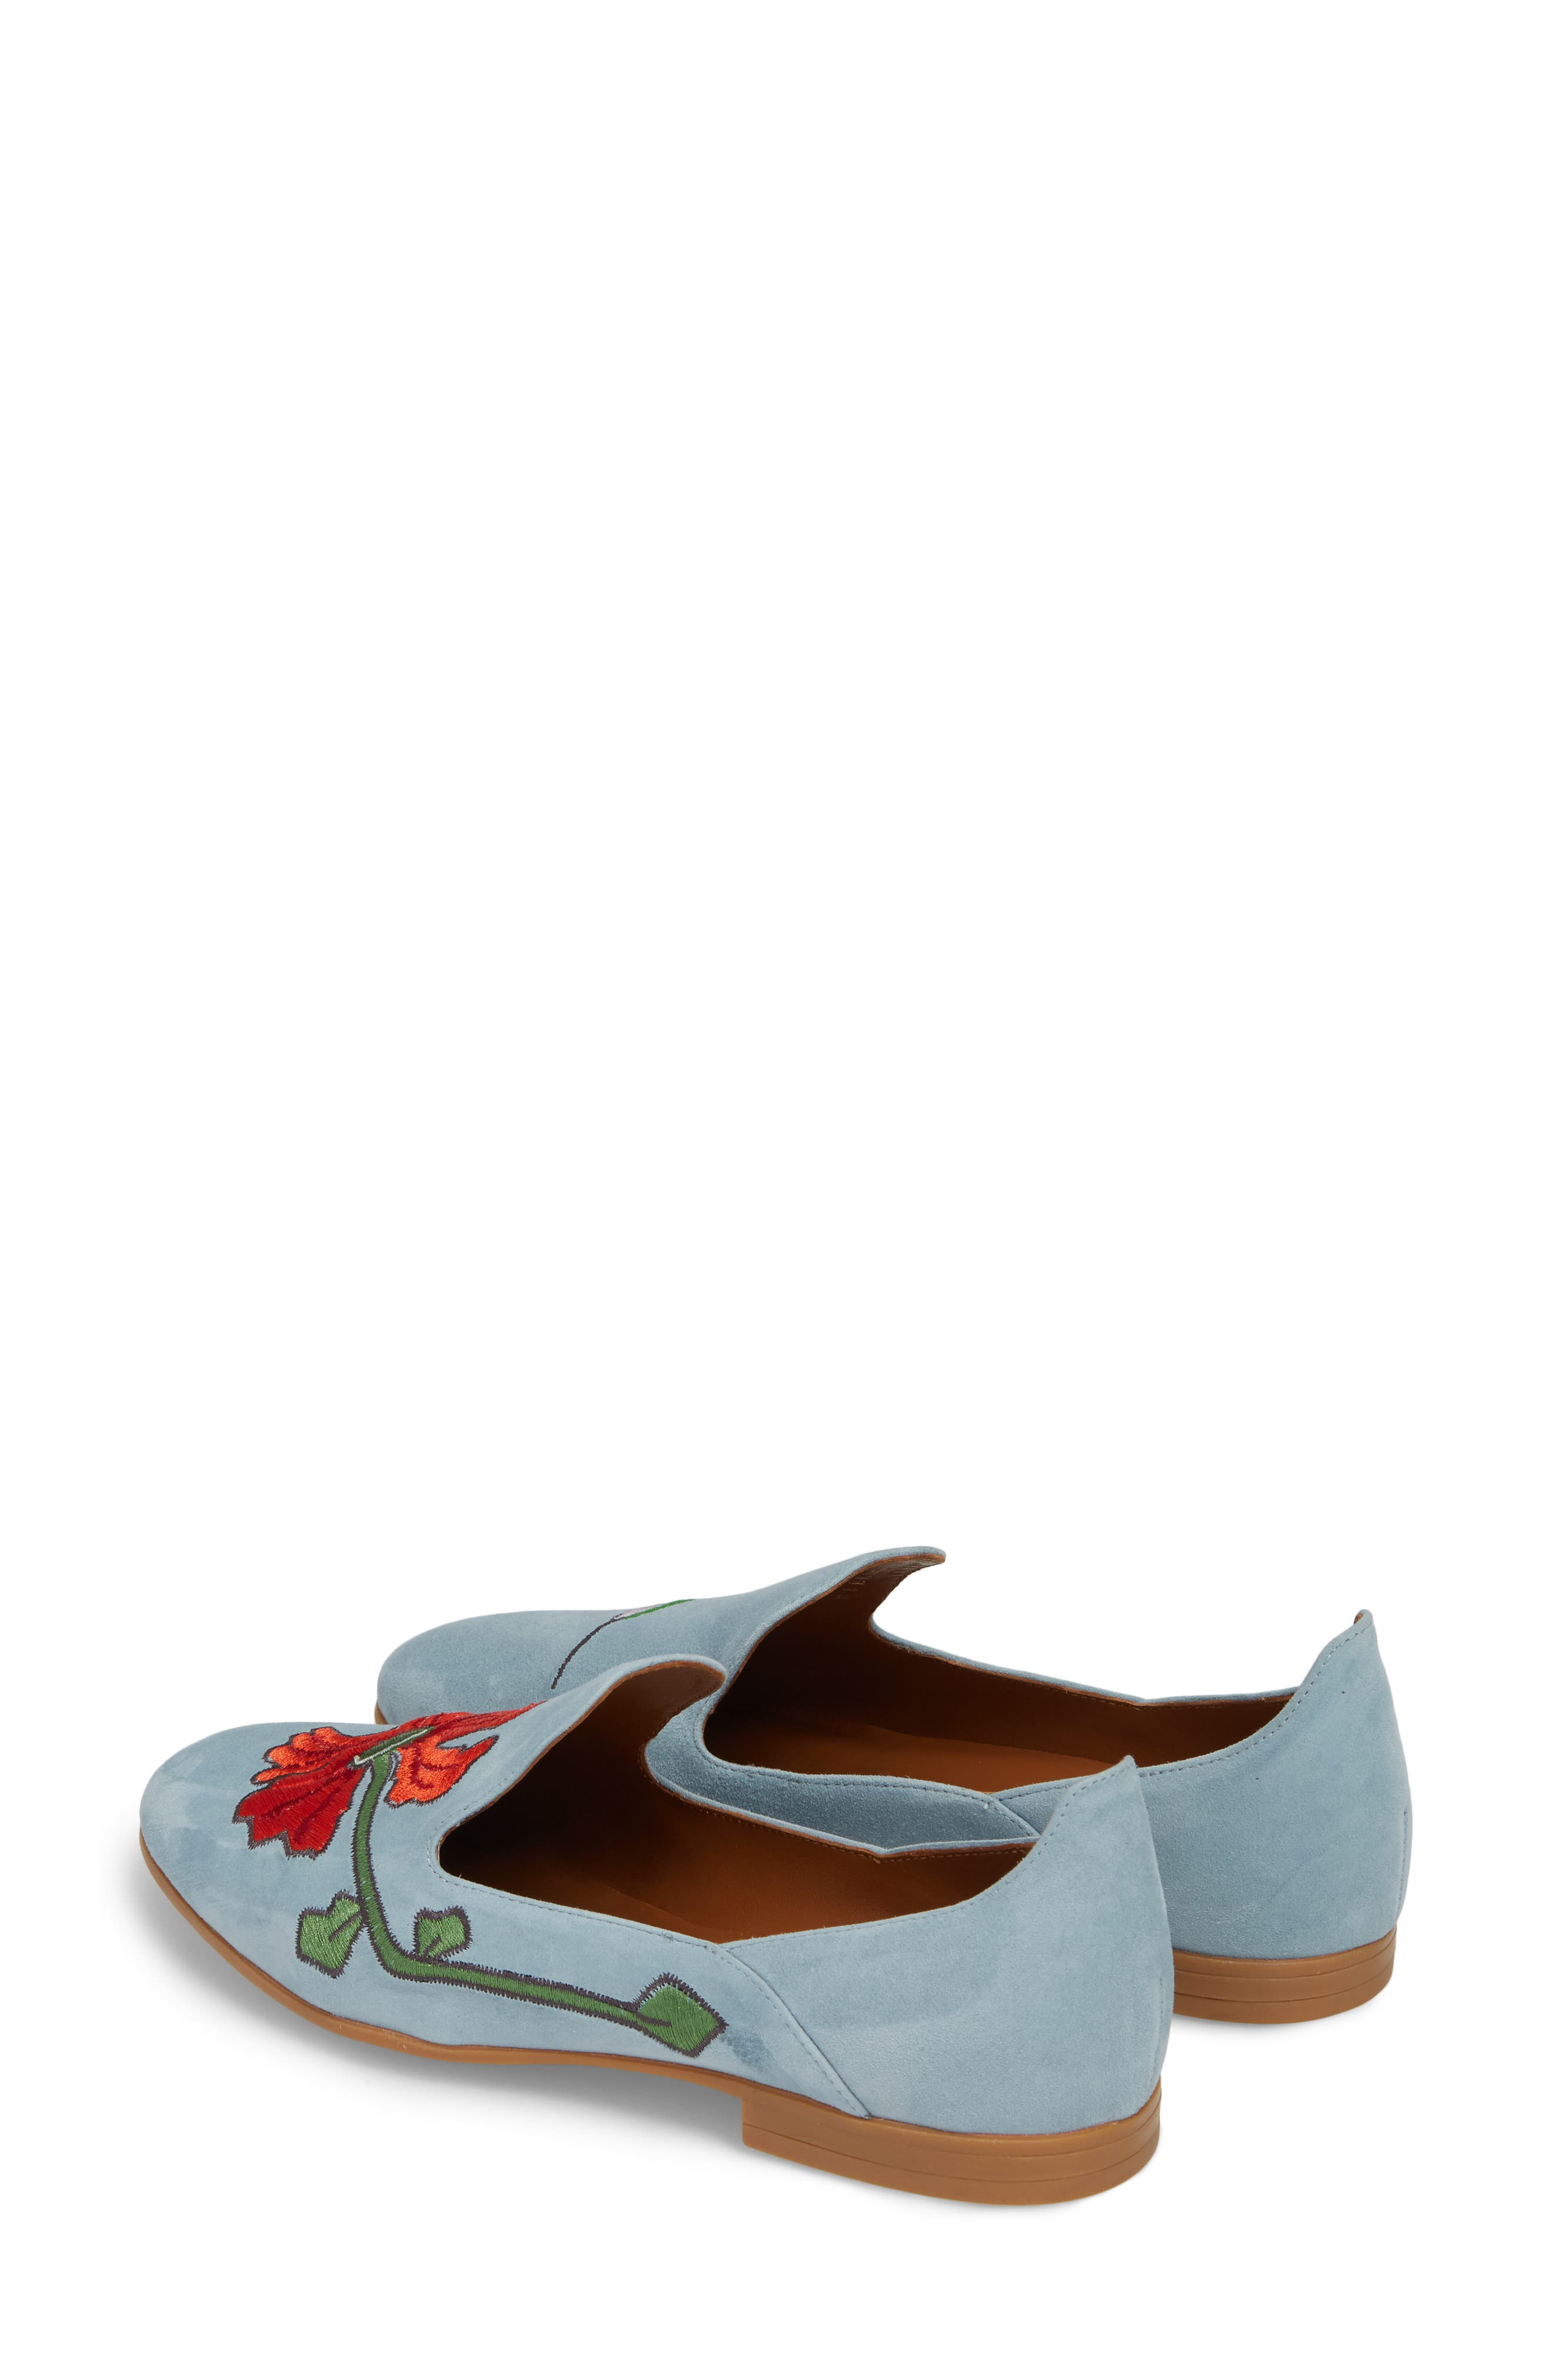 Emmaline Embroidered Loafer,                             Alternate thumbnail 3, color,                             Chambray